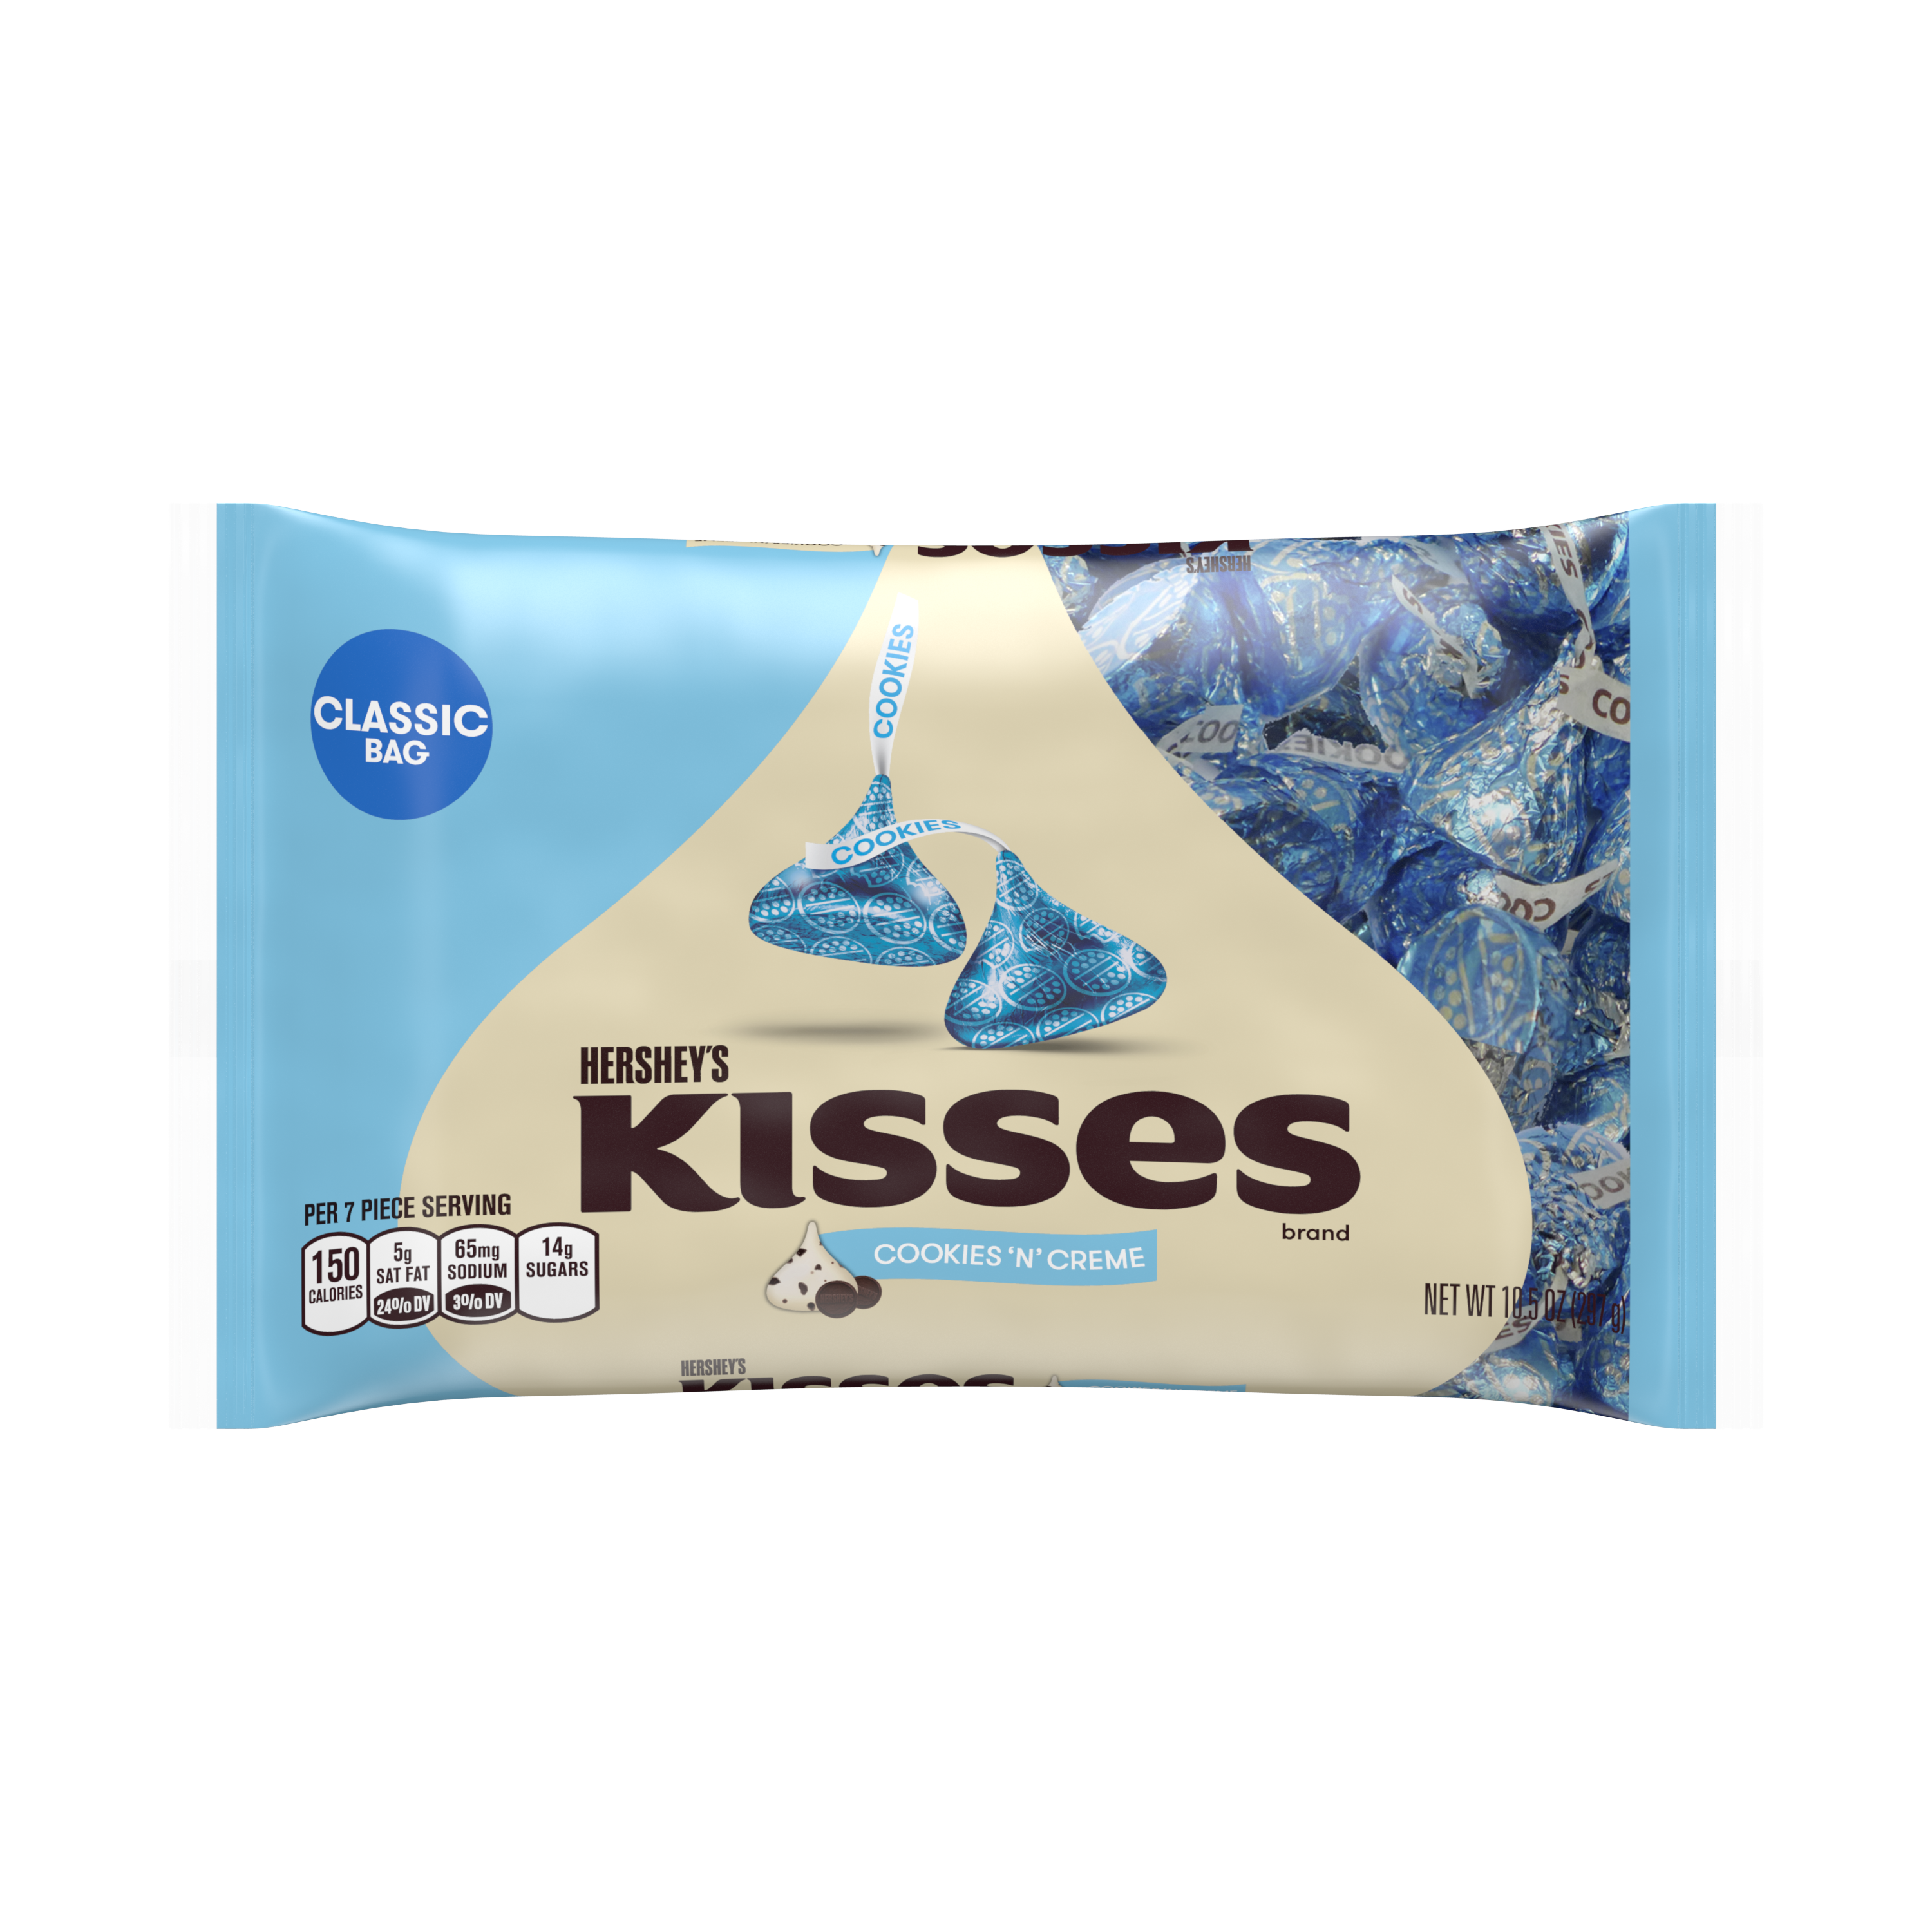 KISSES Cookies 'n' Creme Candy, 10.5 Ounces